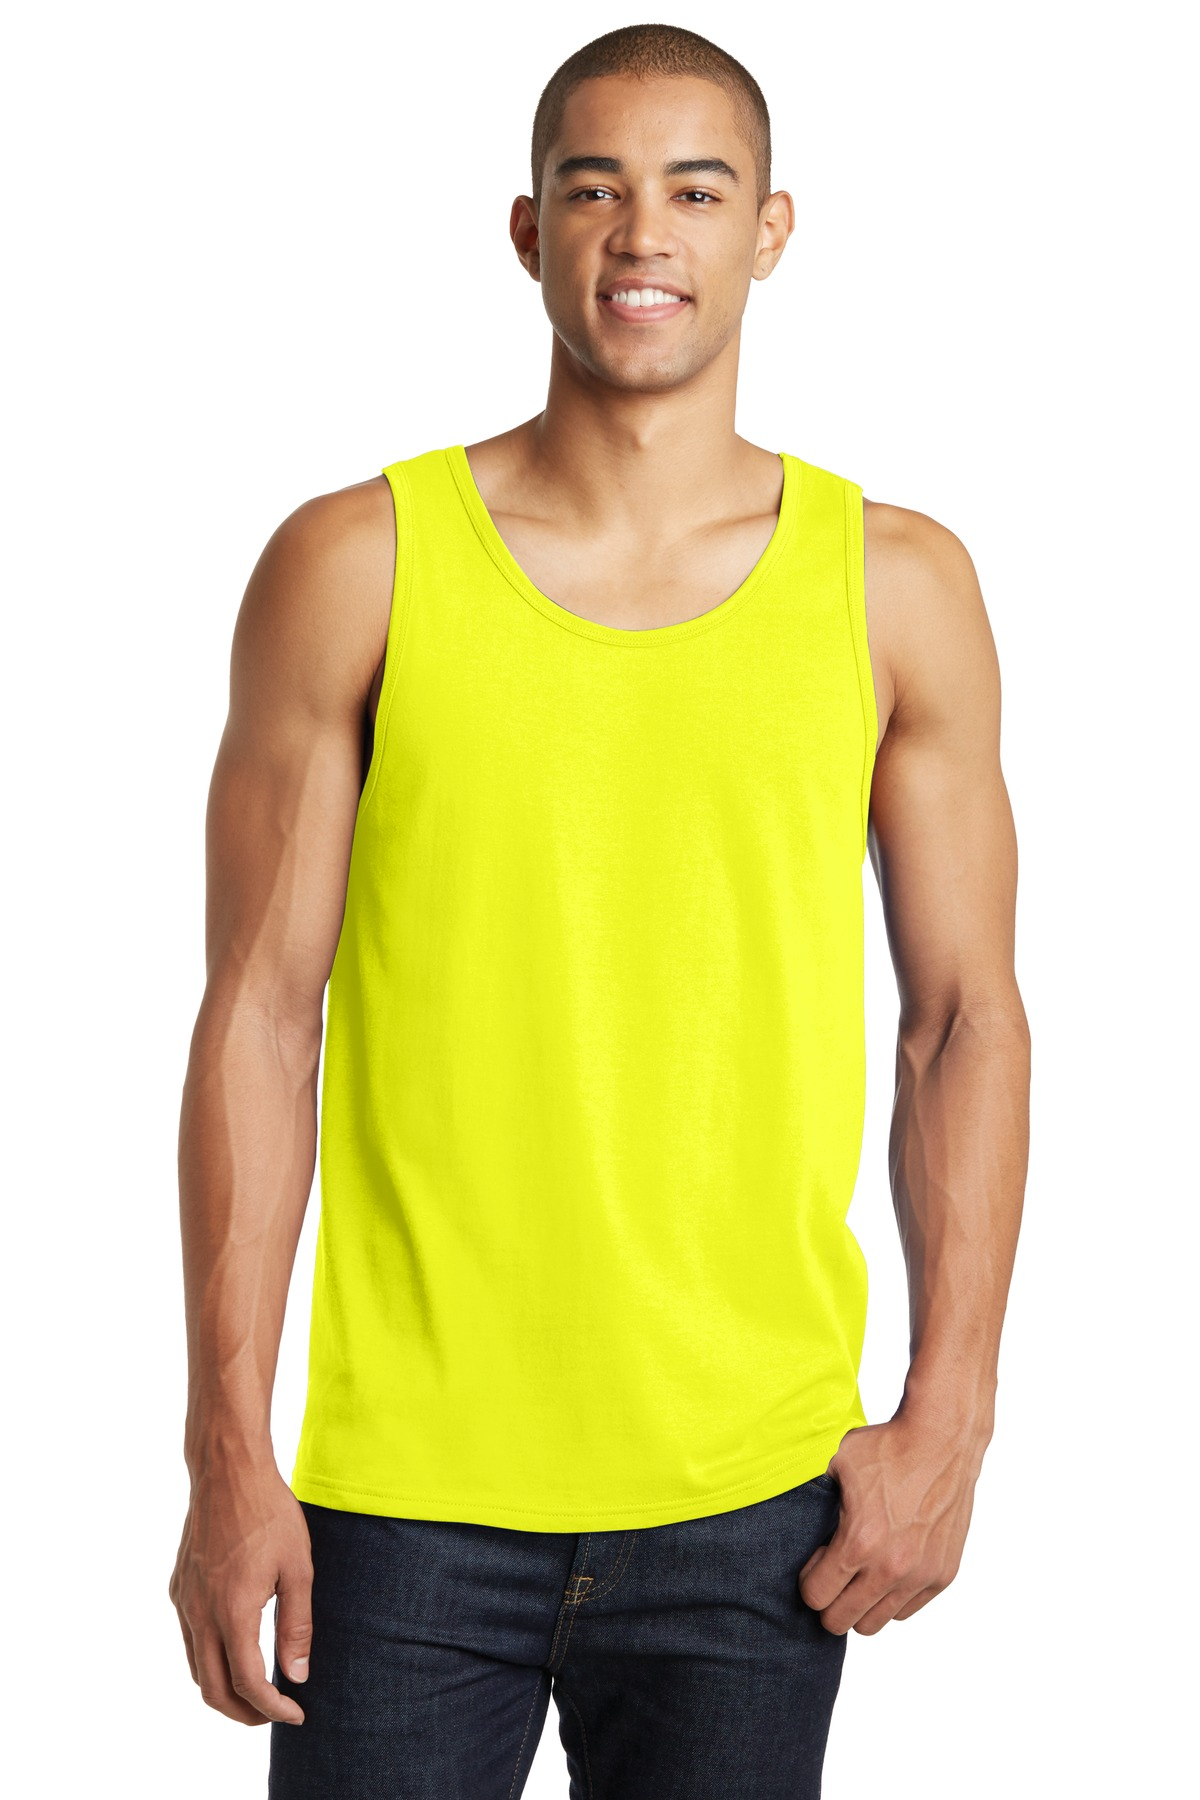 District DT5300 Young Mens Concert Tank Top - White - X-Small